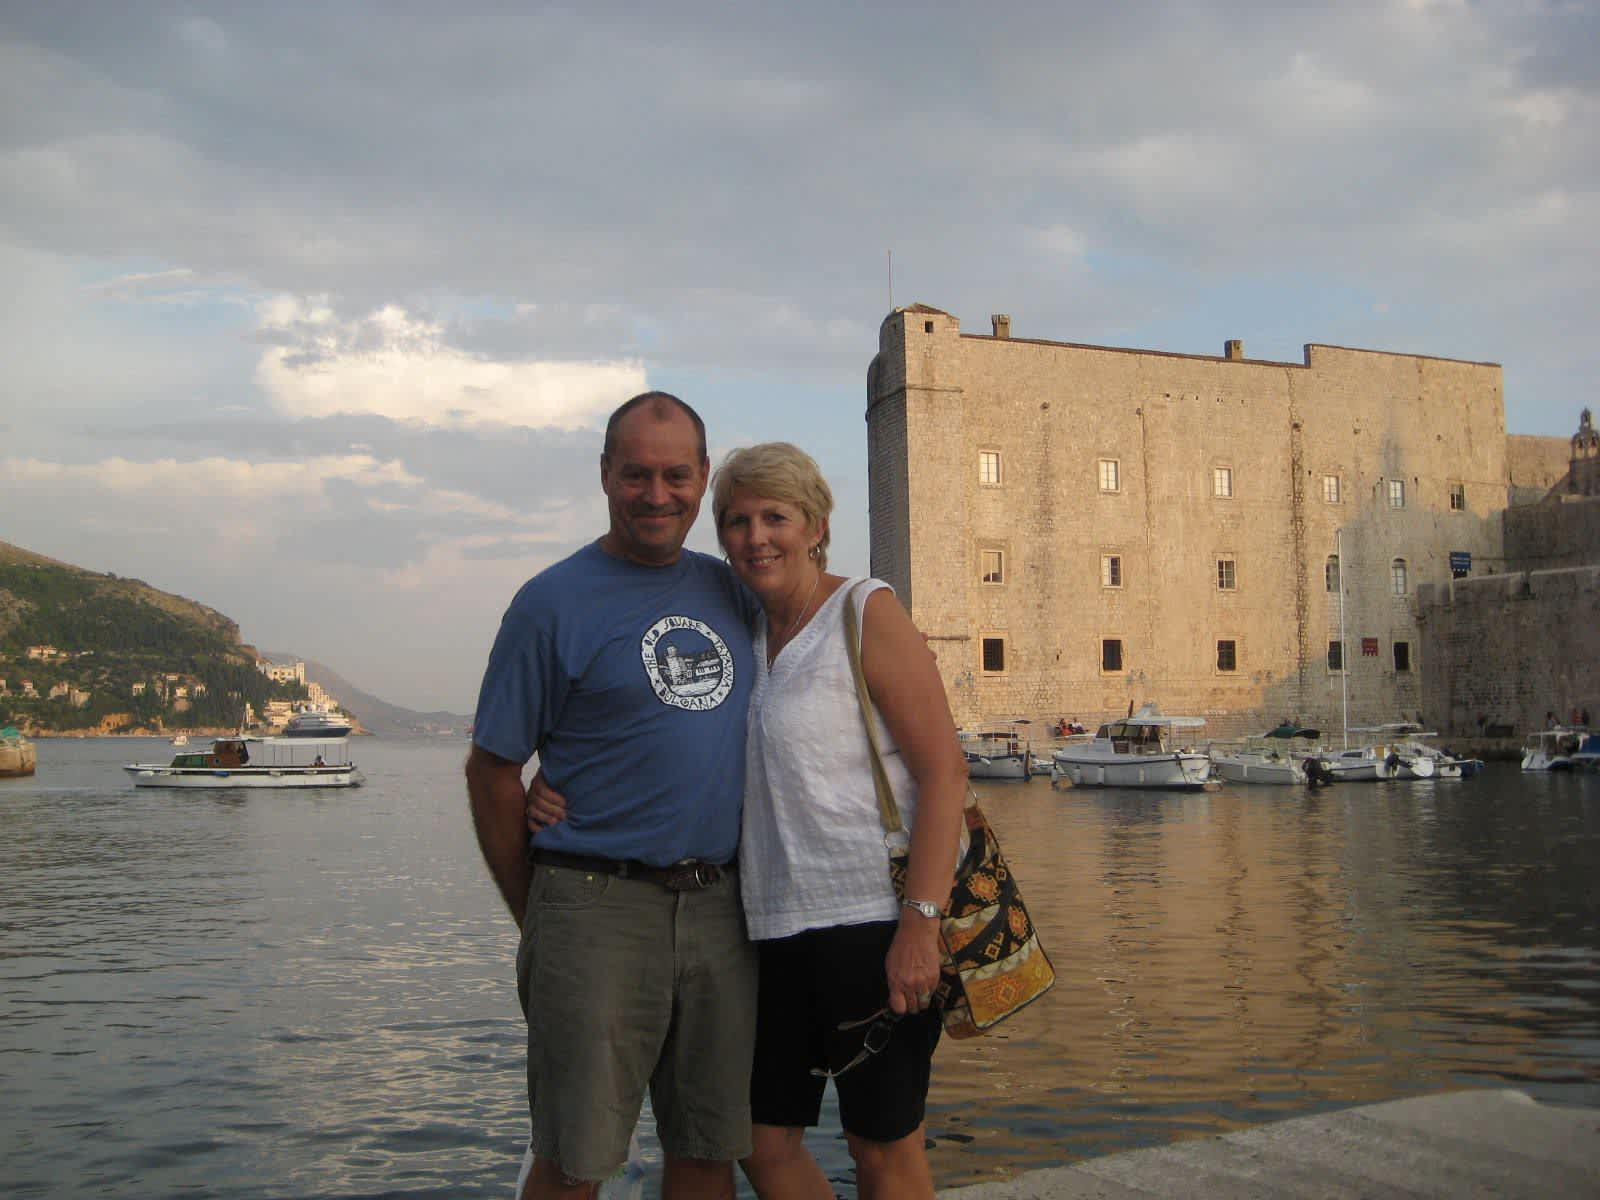 Julie & Brian from Vannes, France